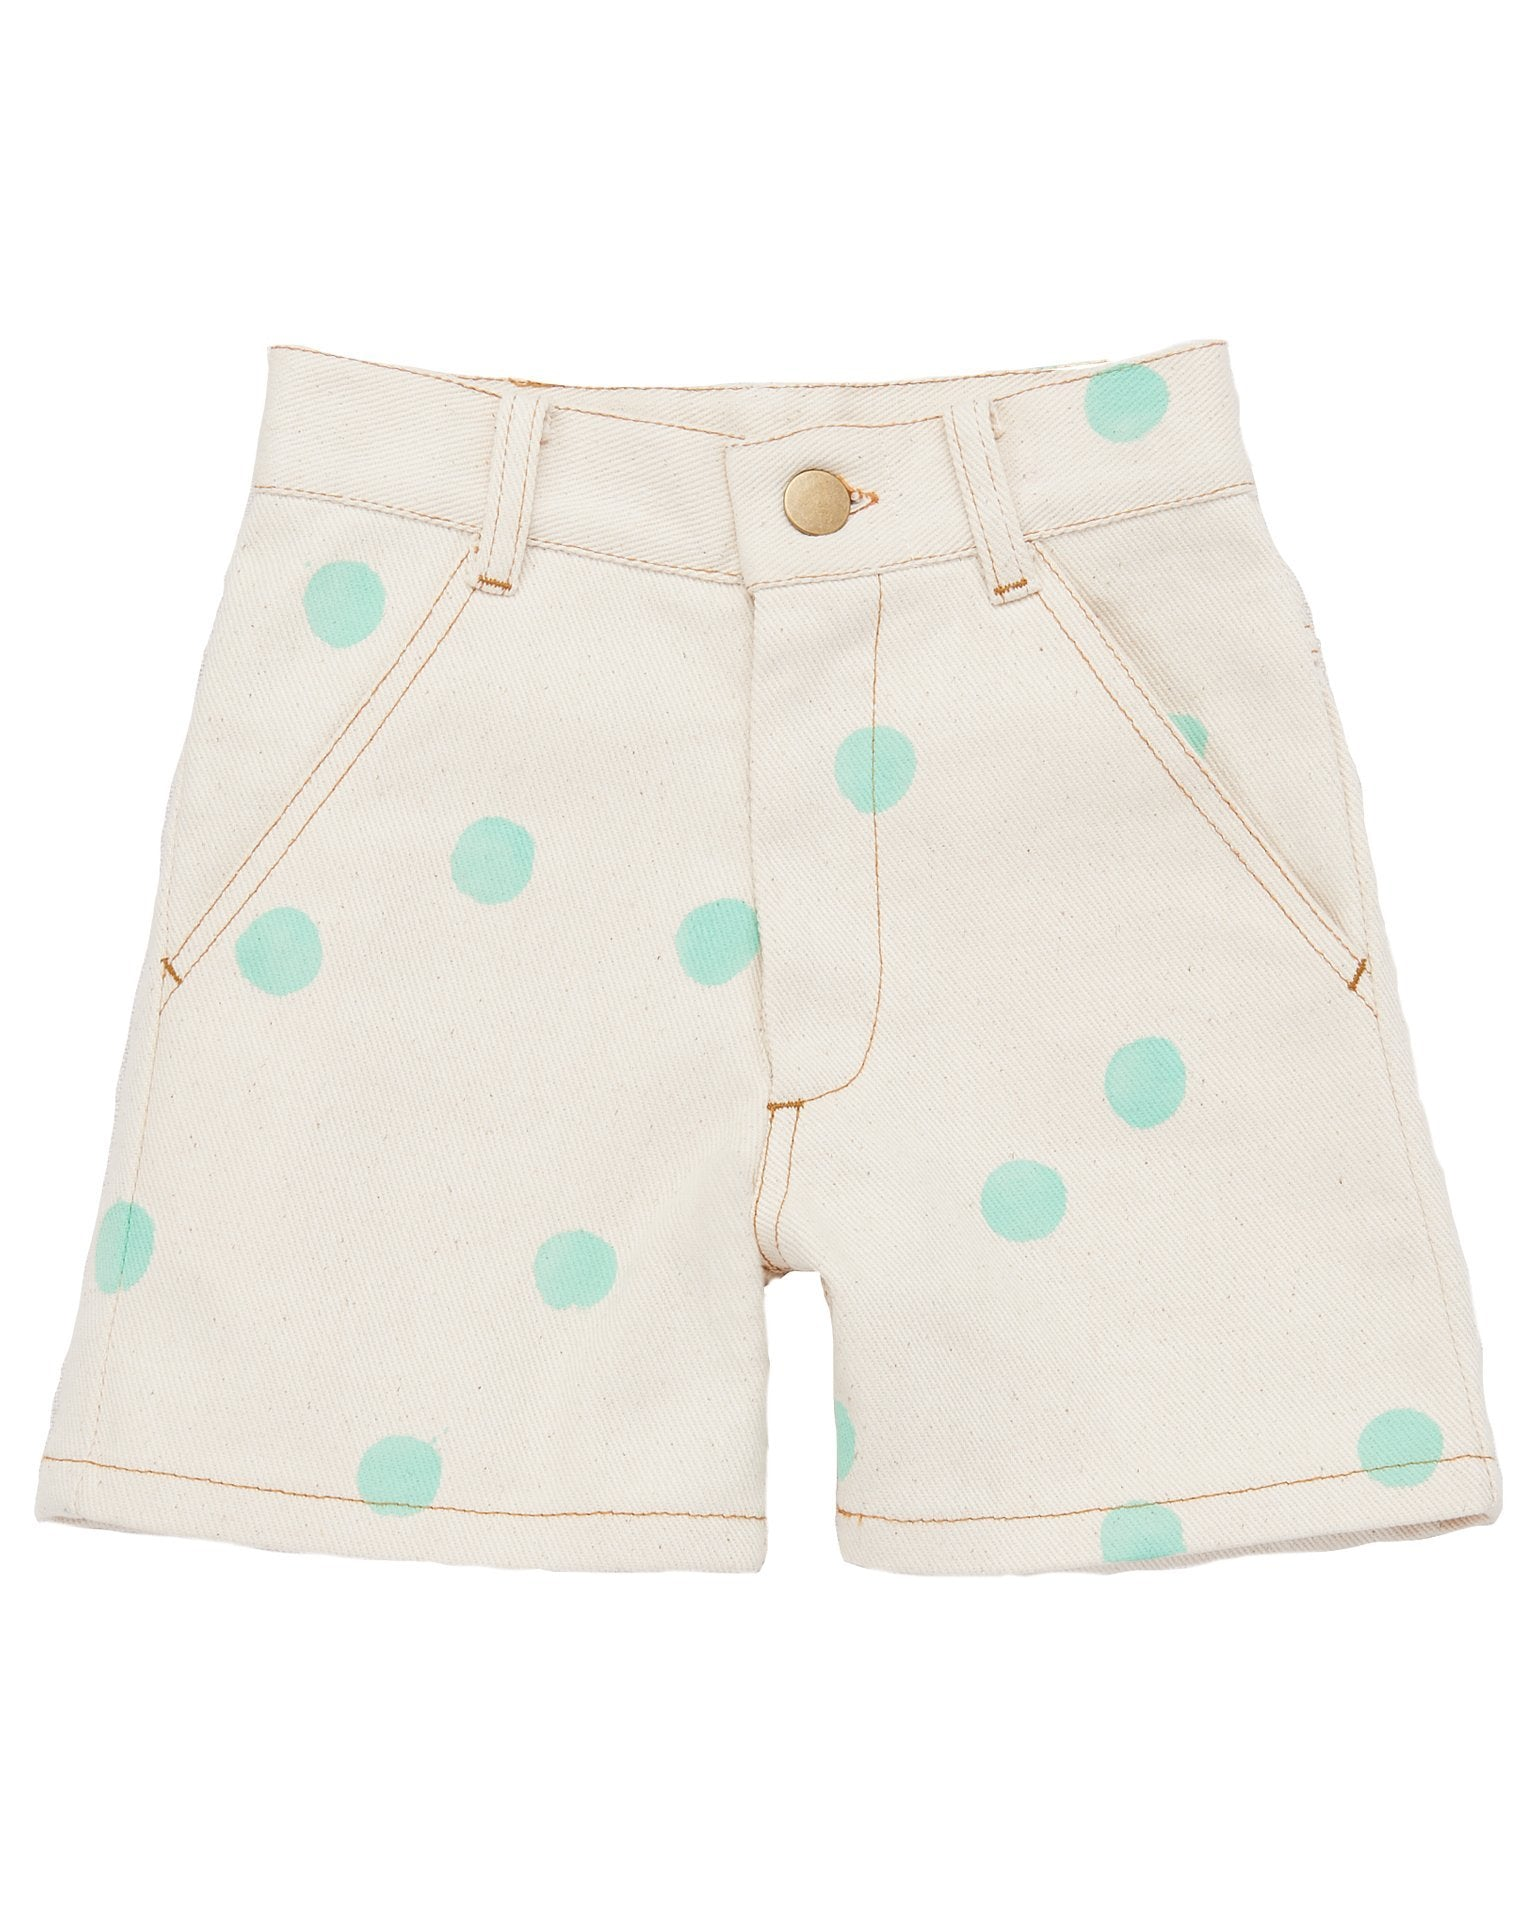 Little misha + puff boy one pocket short in natural